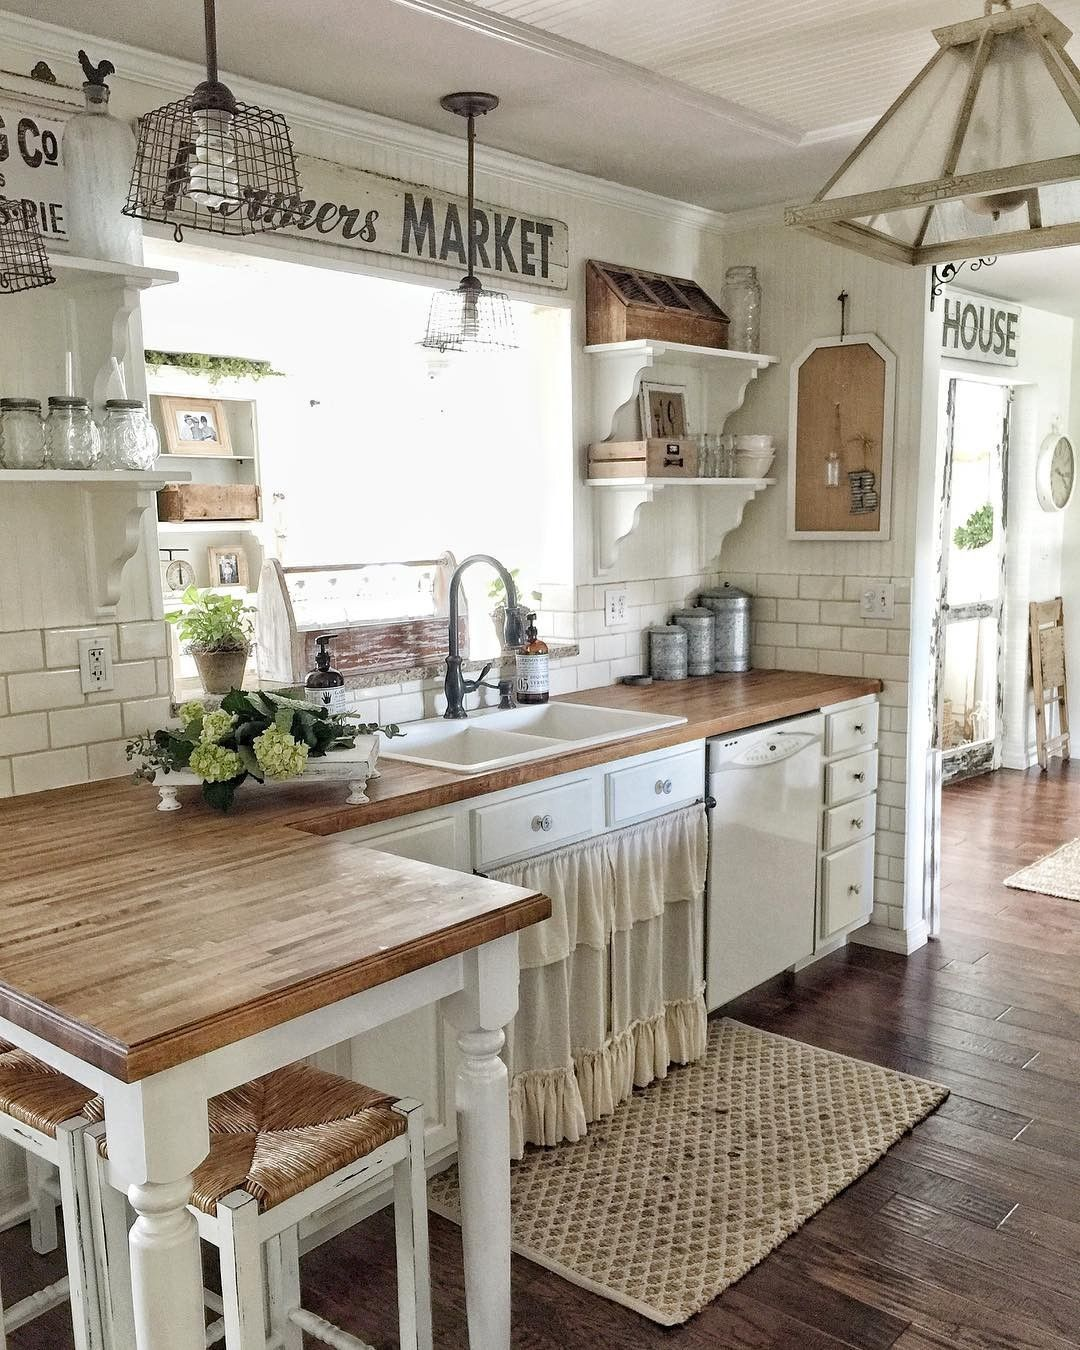 20 Farmhouse Kitchen Ideas On A Budget For 2018 Https Www